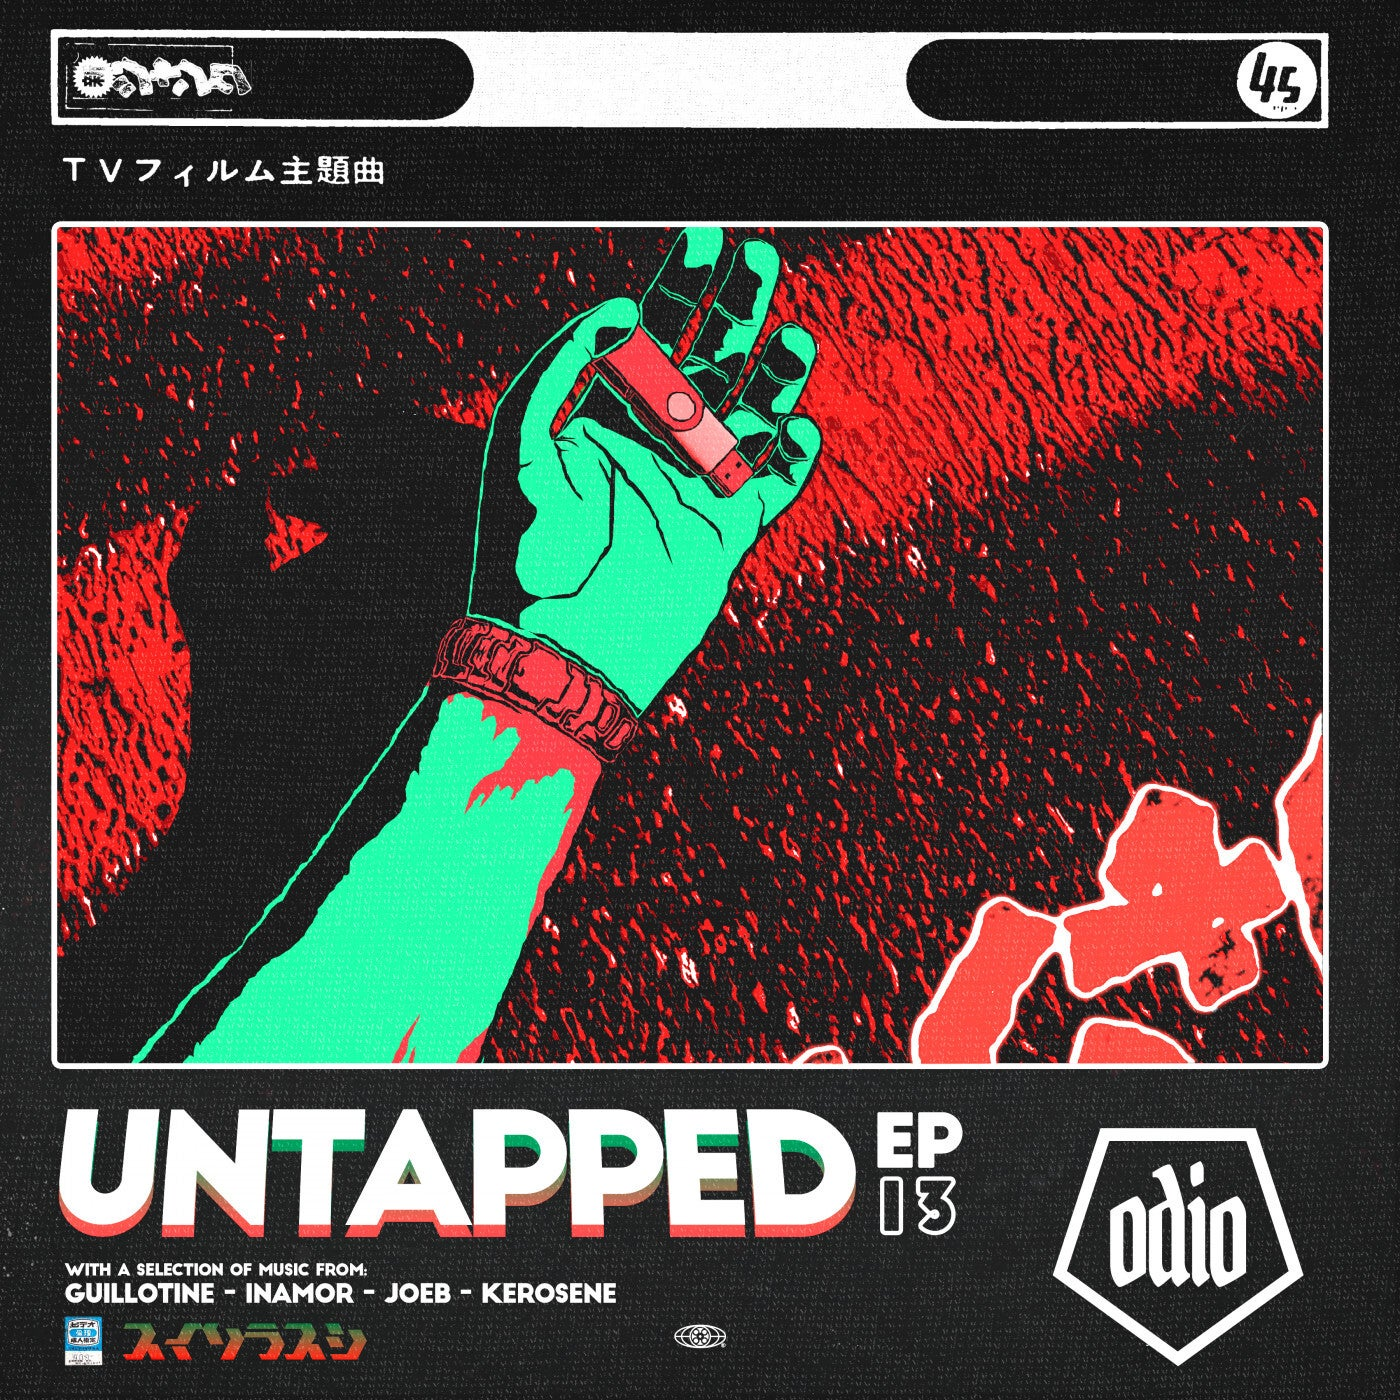 Untapped Vol. 13